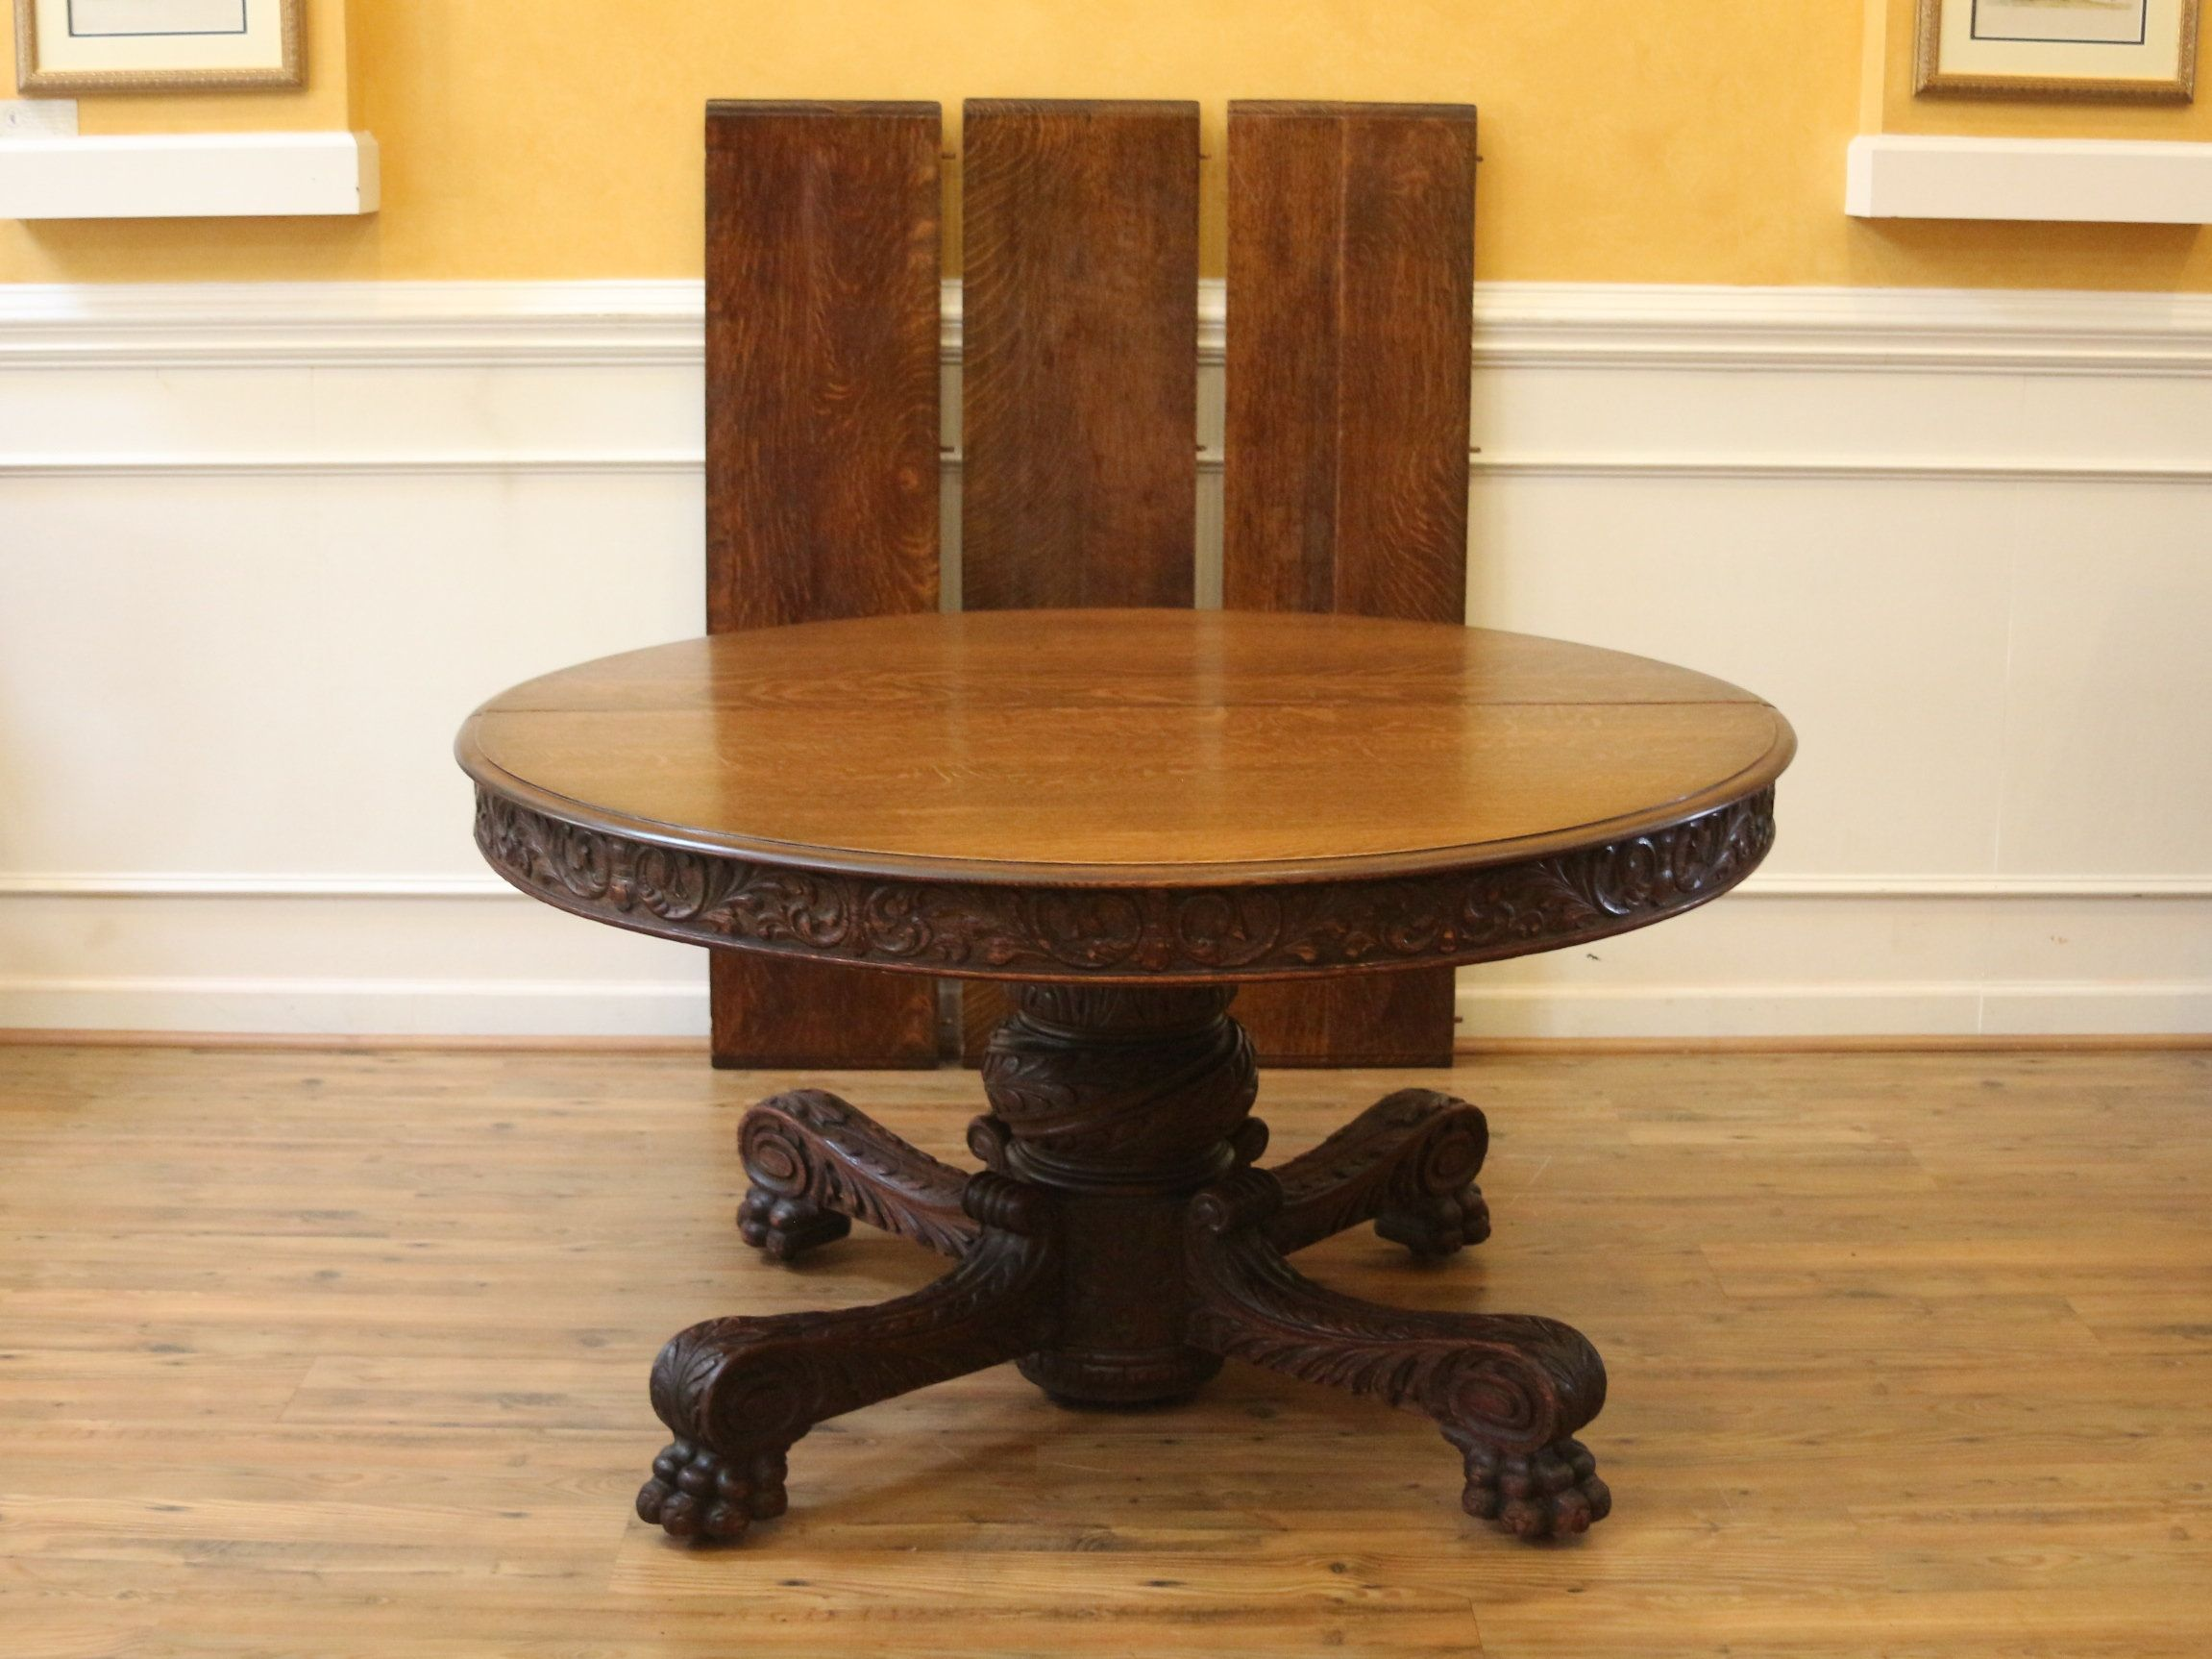 Antique 54 Round Pedestal Dining Table Heavily Carved Solid Oak Extending Wi Antique Dining Room Furniture Round Pedestal Dining Table Round Pedestal Dining